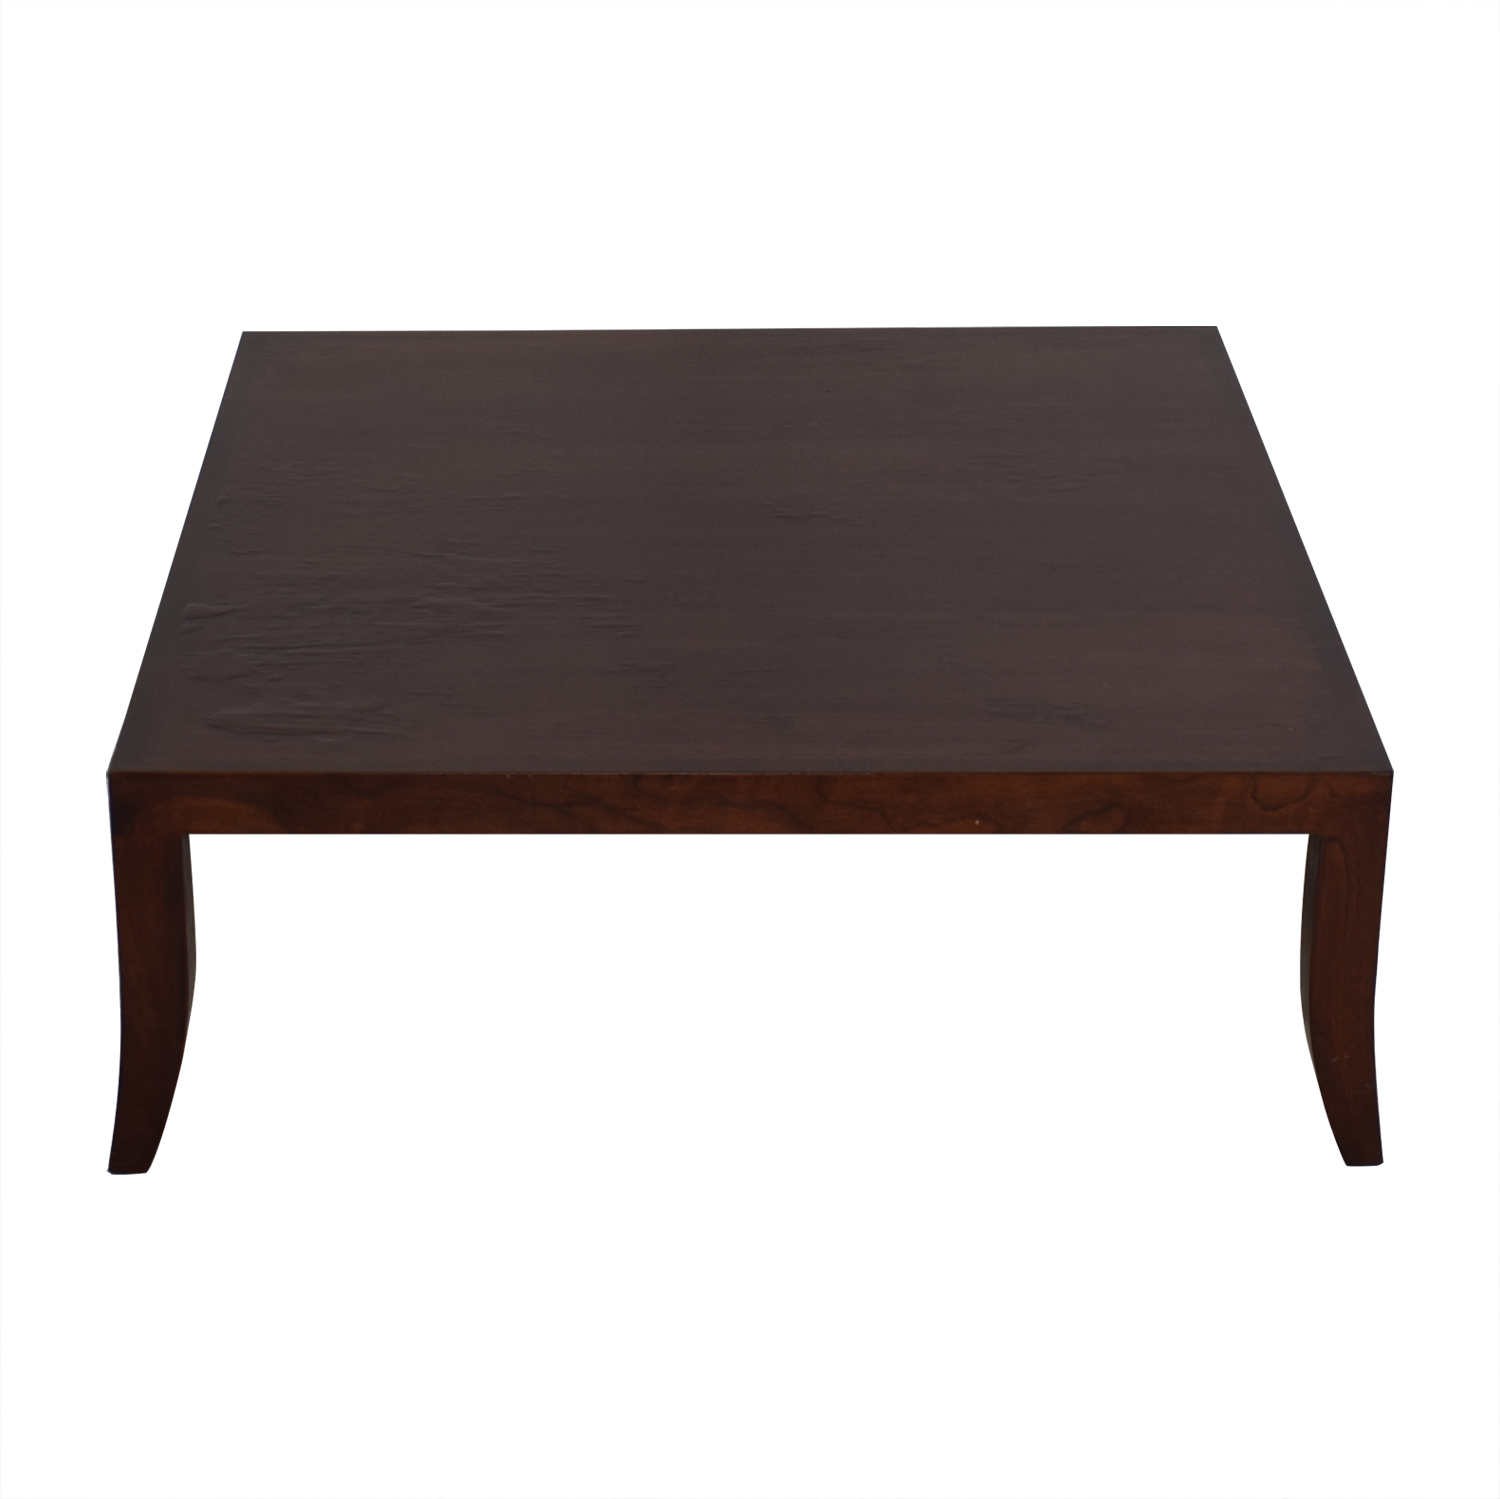 buy A Rudin Square Coffee Table A Rudin Tables